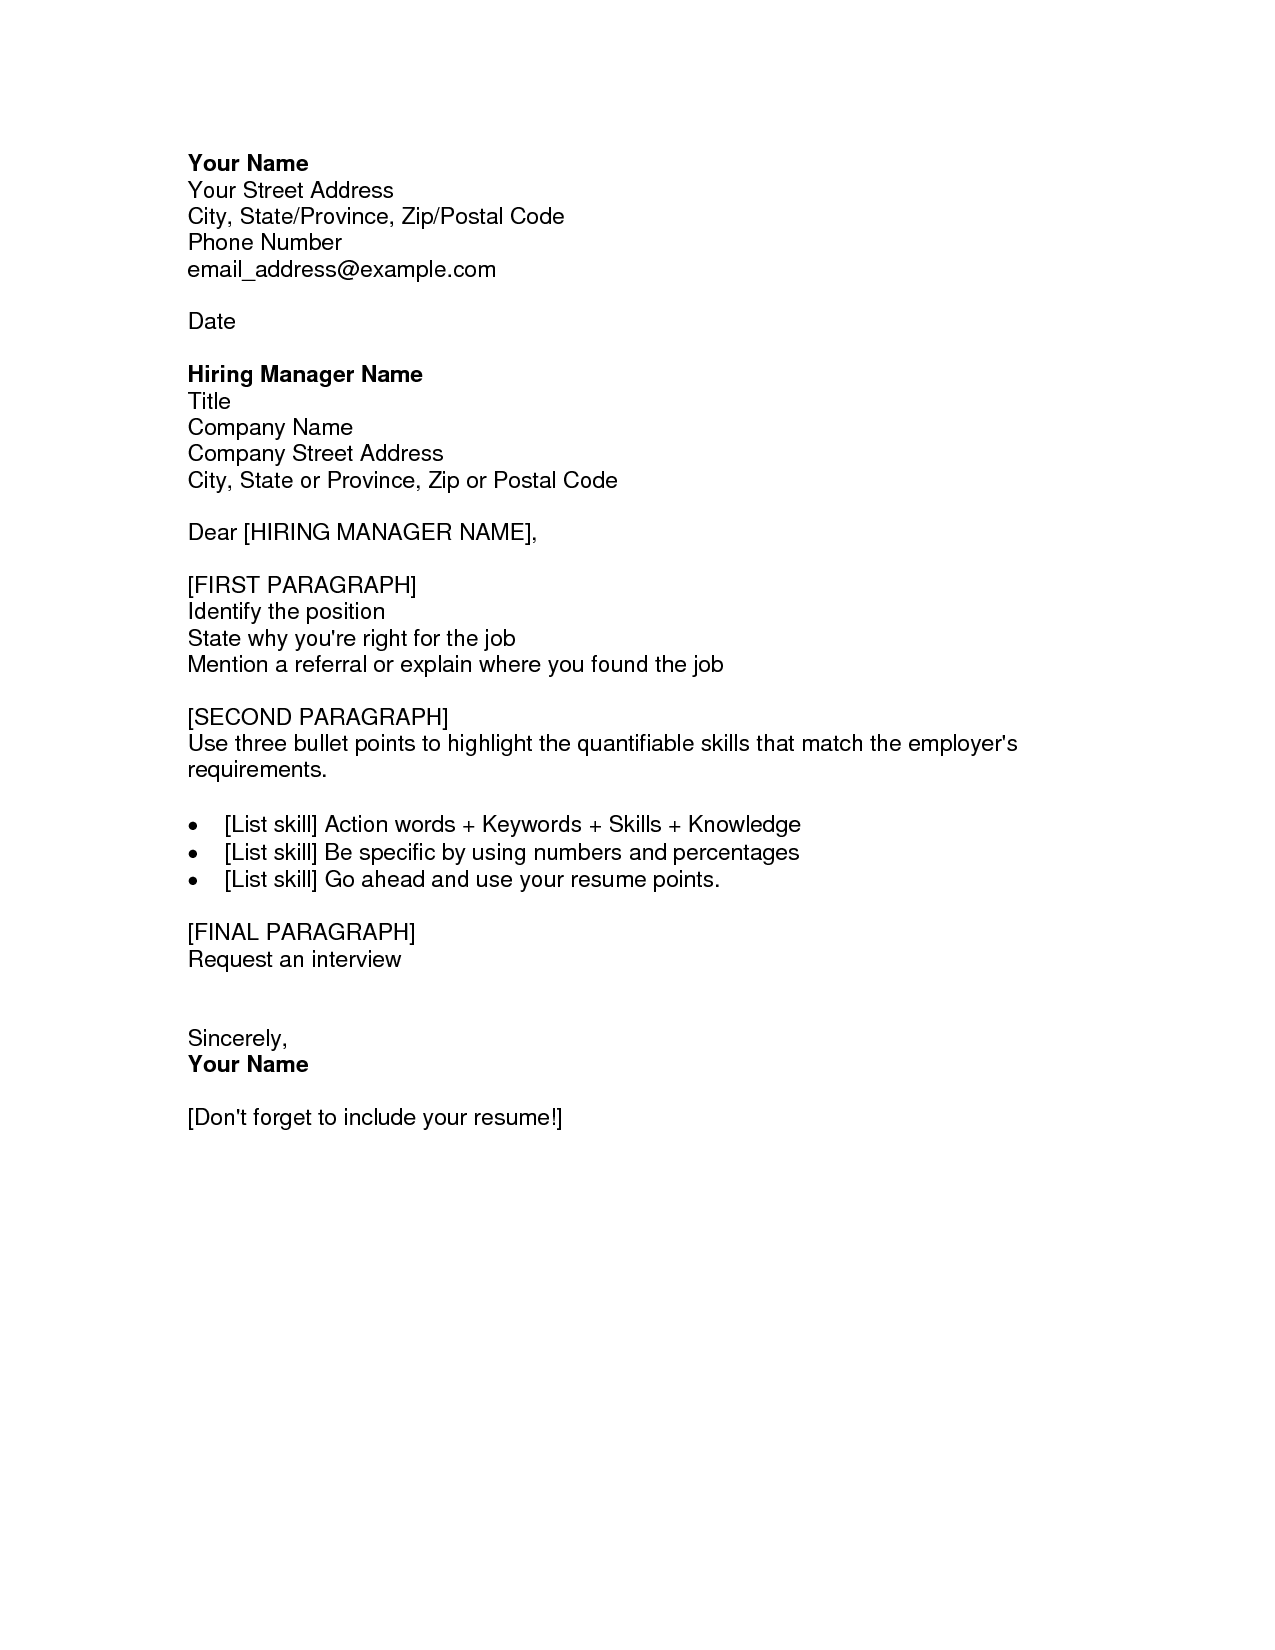 resume cover letter examples fotolipcom rich image and wallpaper resume cover letter examples 38 resume cover - Sample Cover Letter Template For Resume